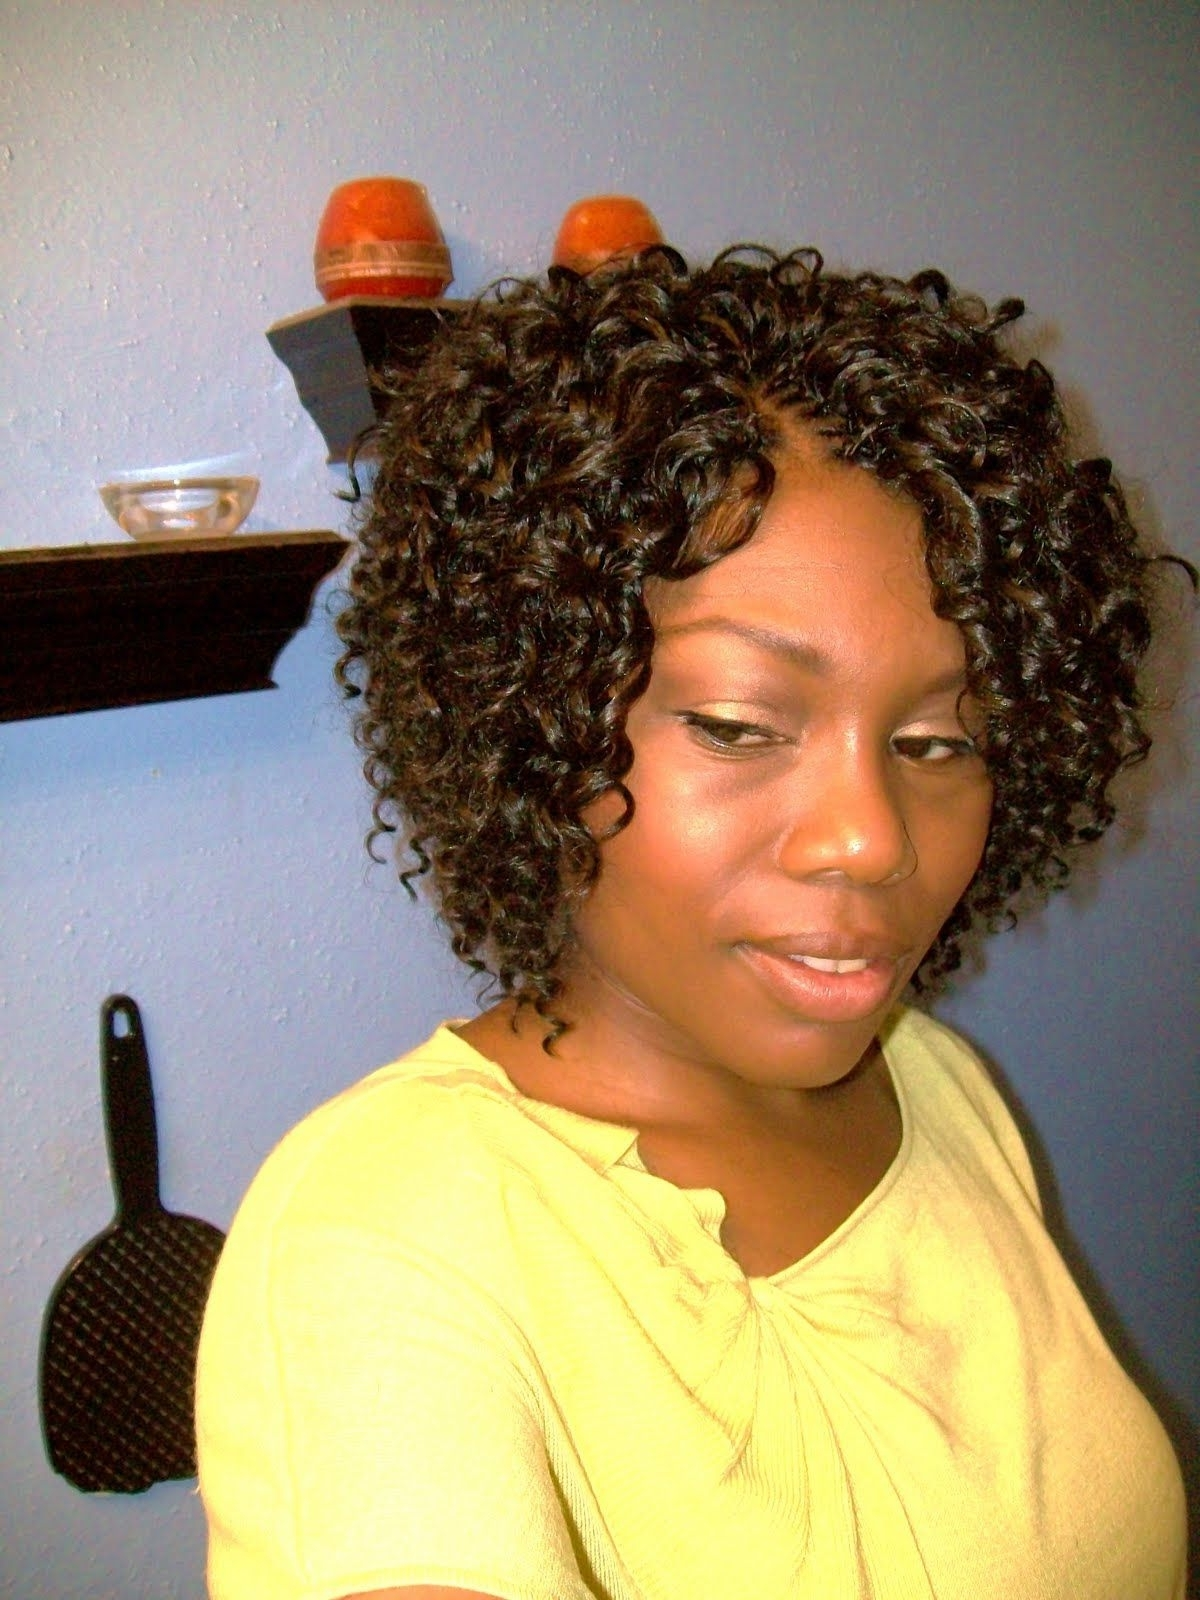 Trendy Braided Hairstyles For Short African American Hair Regarding Jamaica Here I Come… But First — What Hair Style Is Appropriate (View 13 of 15)